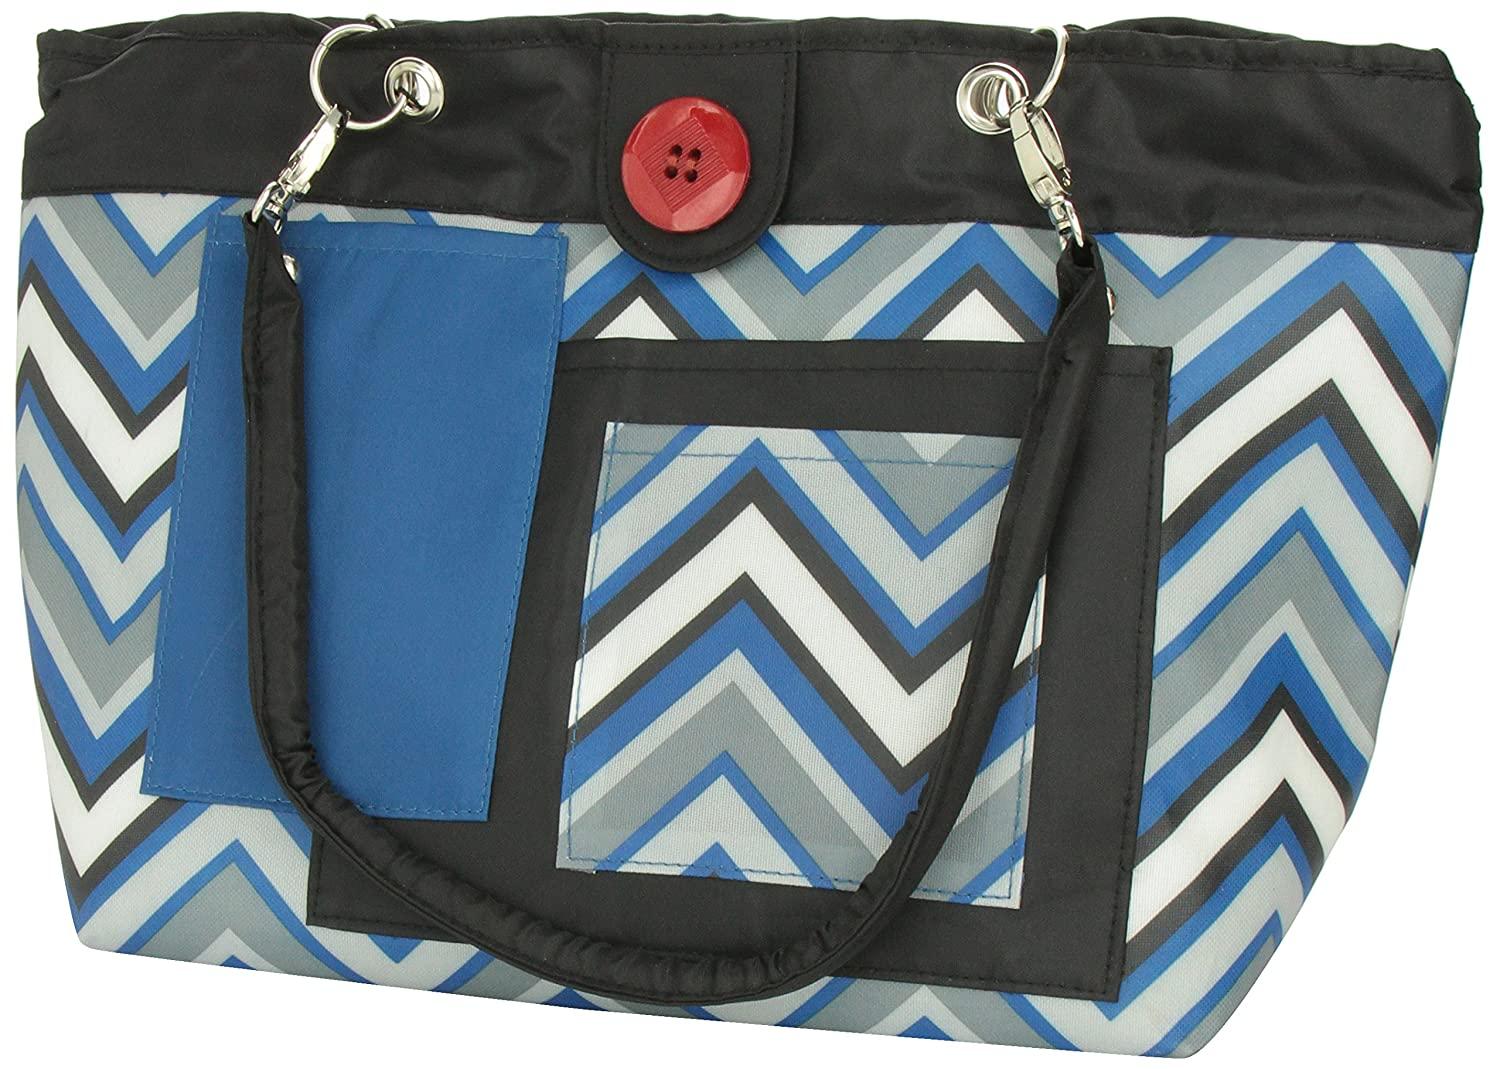 Amazon 2 Red Hens Rooster Diaper Bag Blue Chevron Diaper